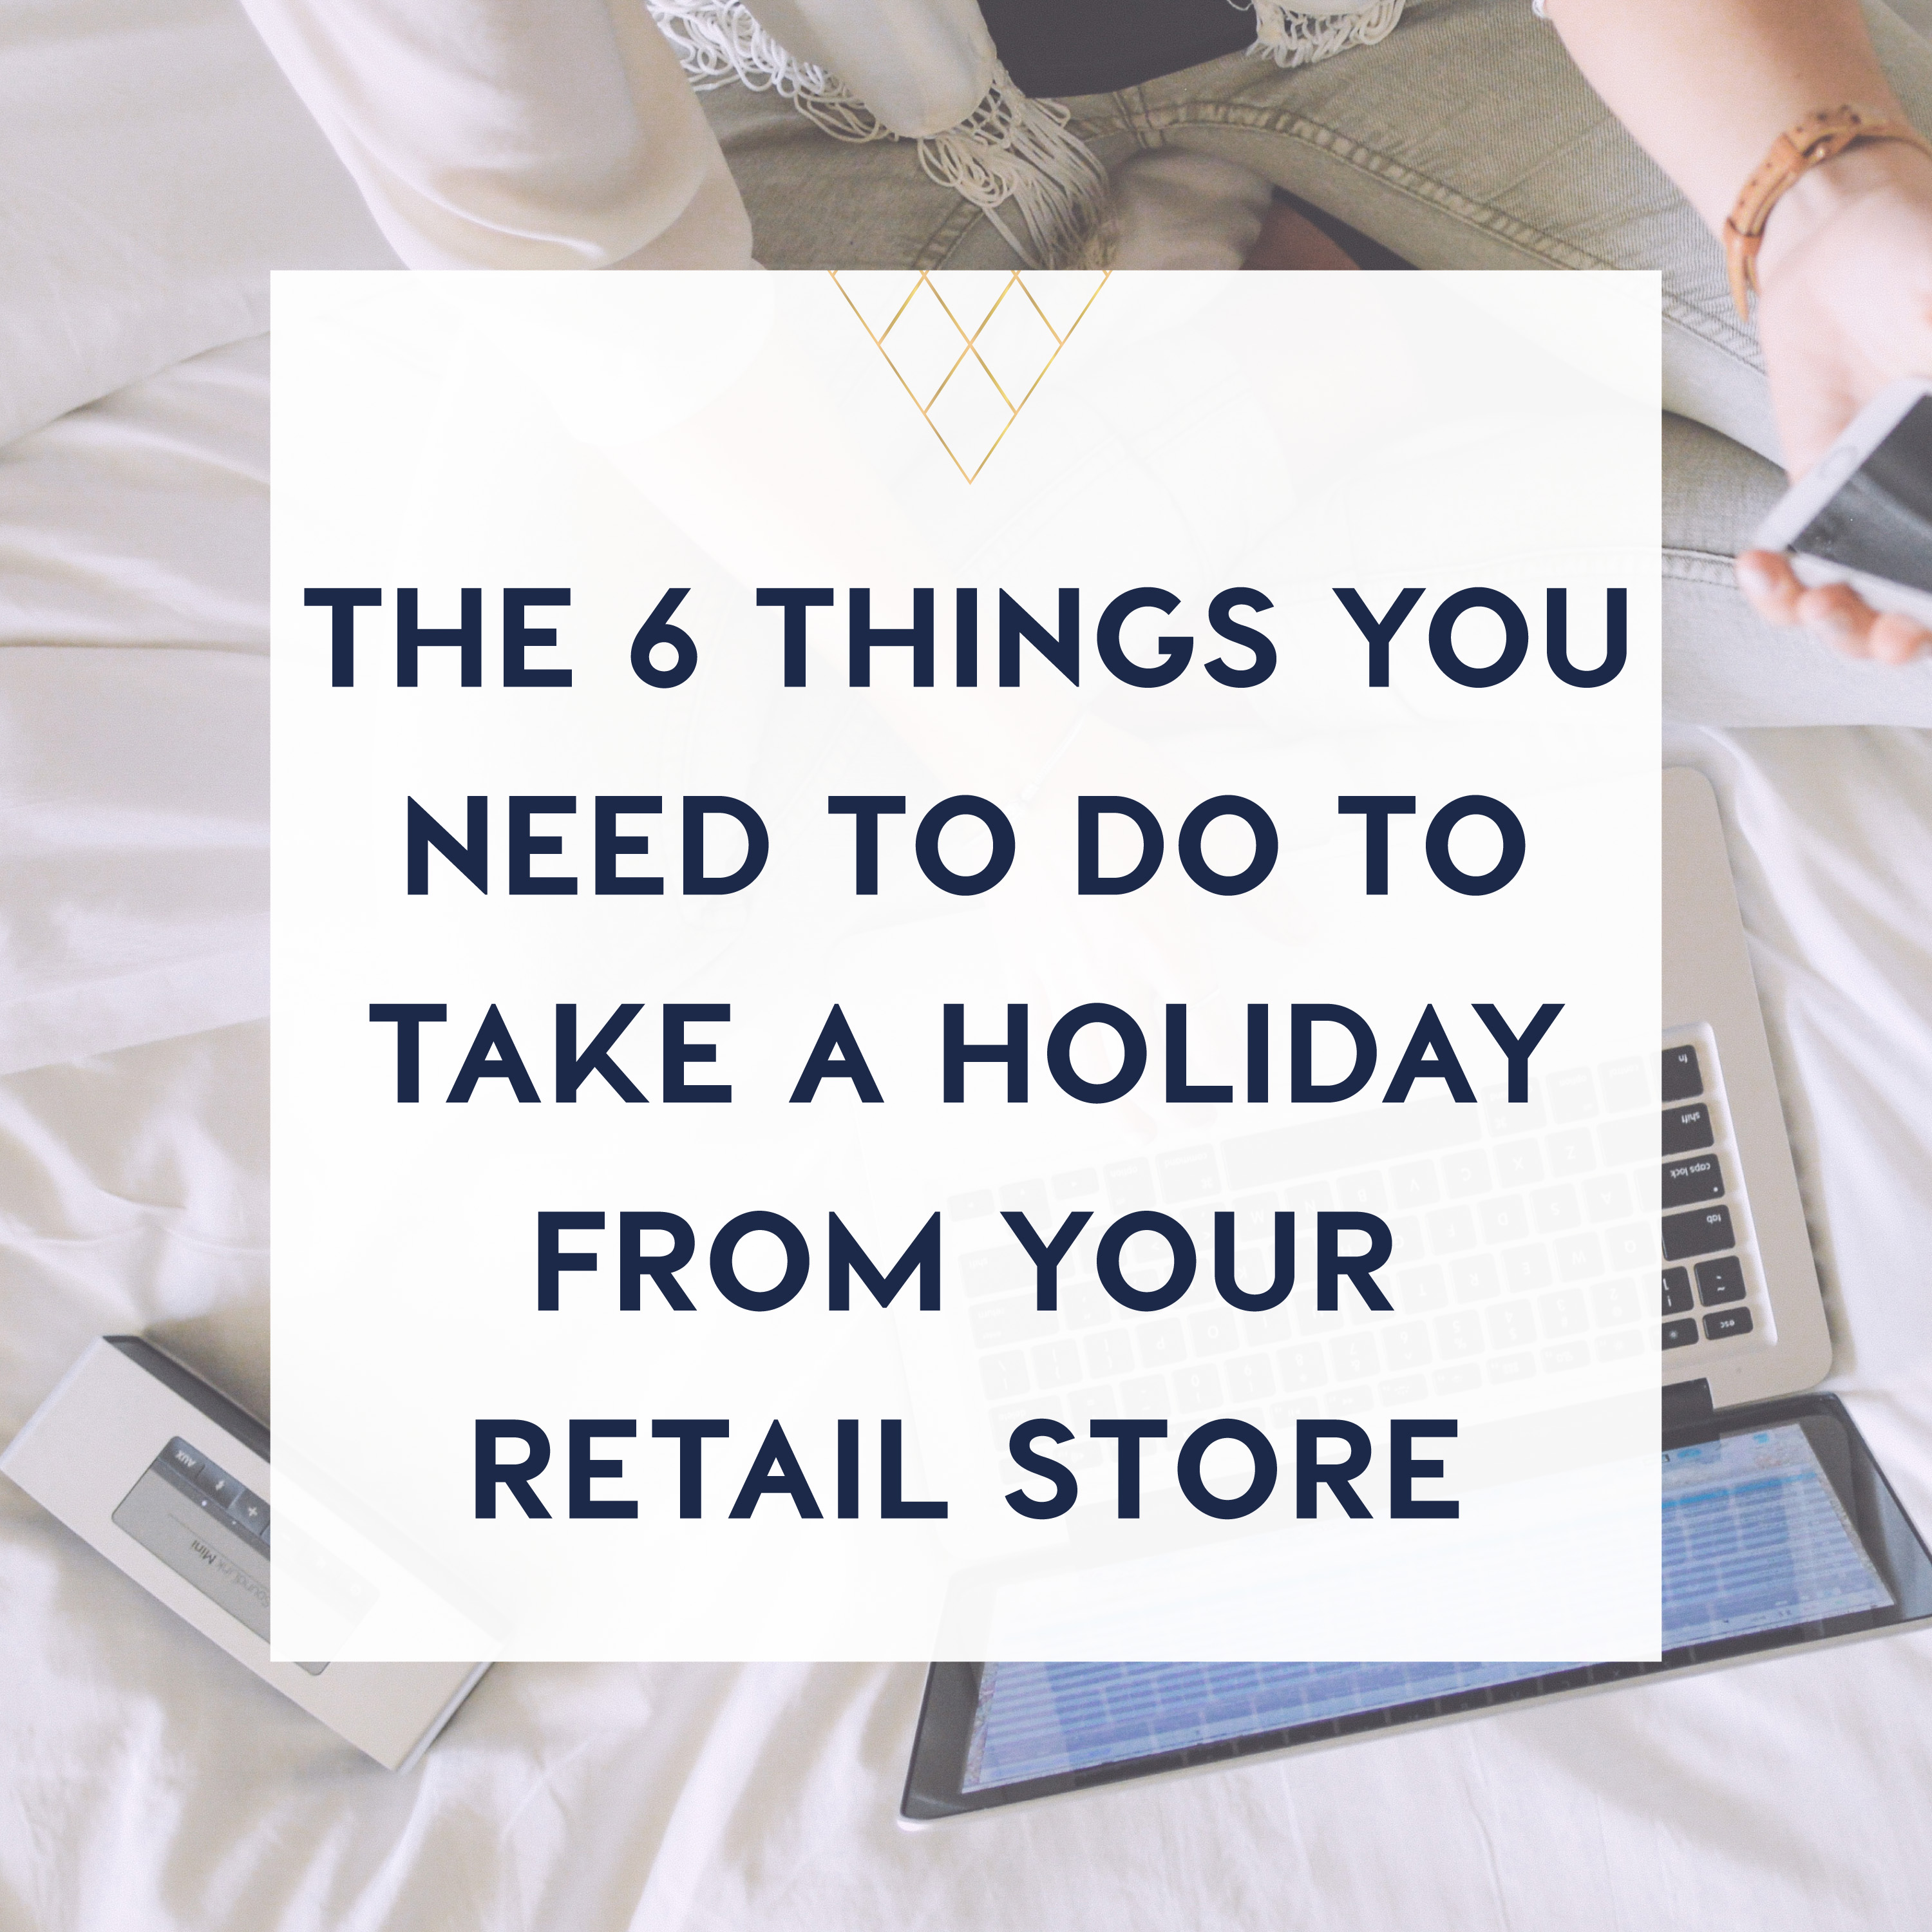 the 6 things you need to do to take a holiday from your retail store